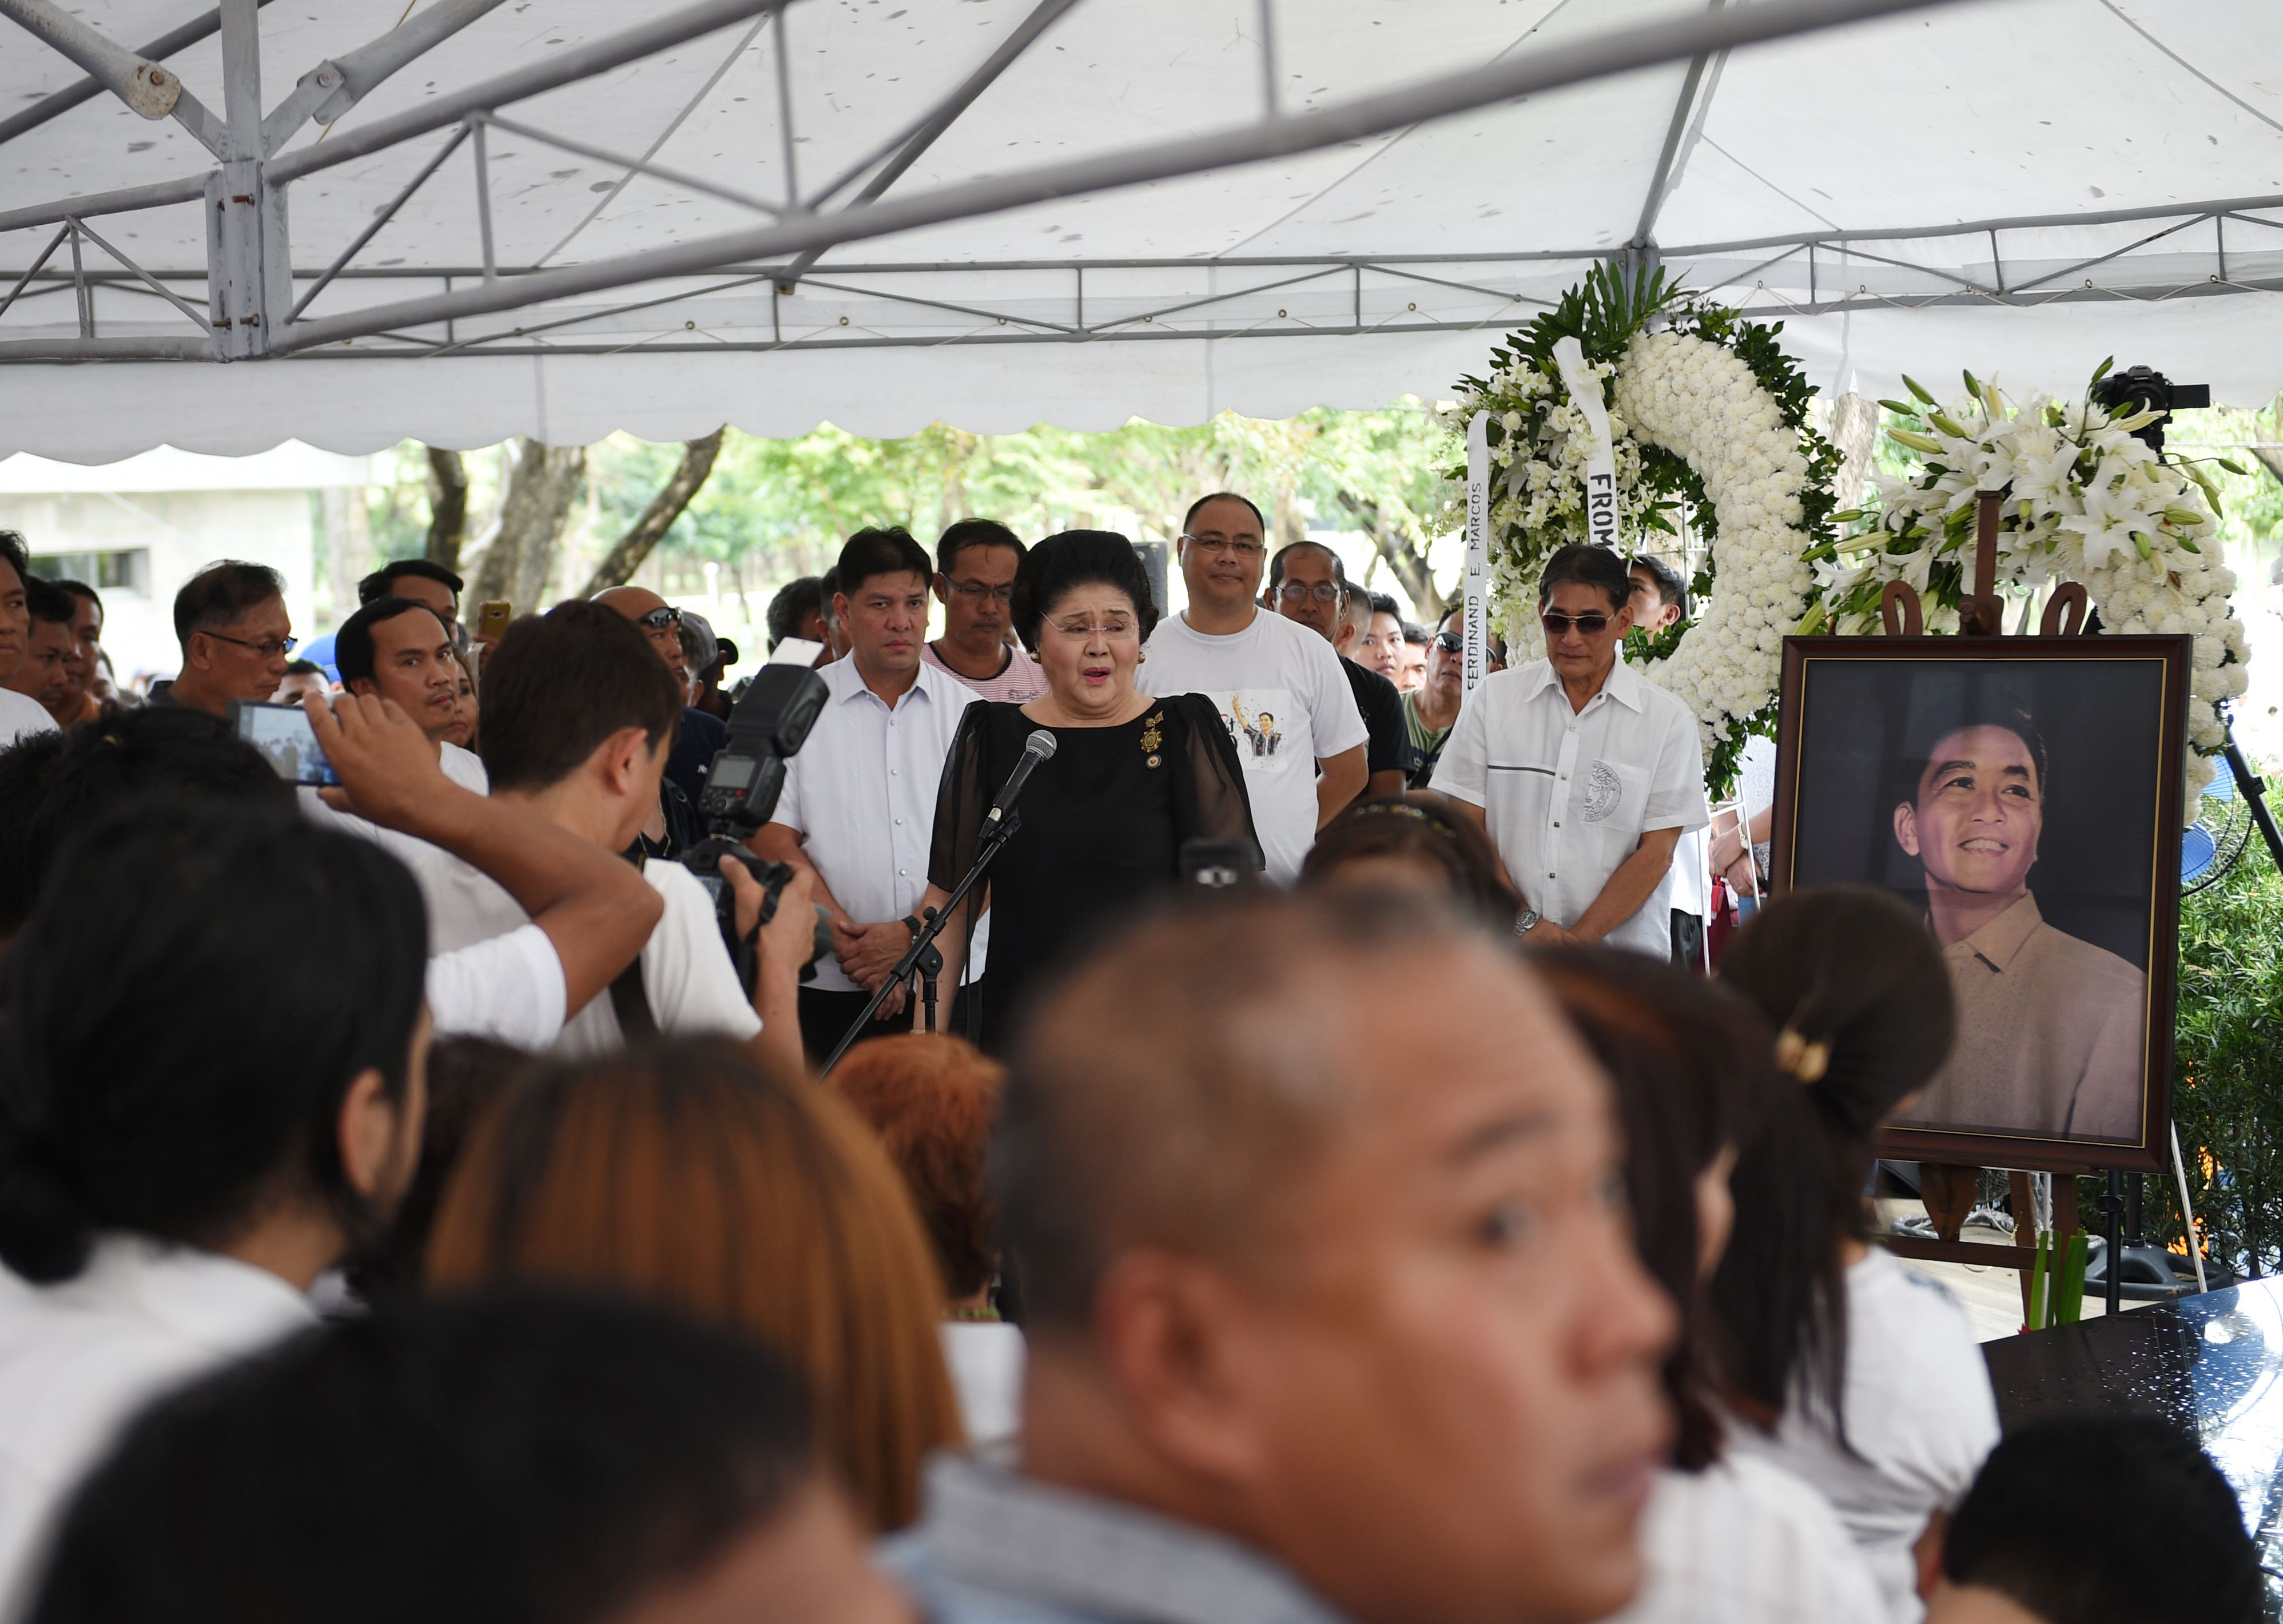 Philippines' former First Lady Imelda Marcos, center, speaks to supporters at the graveyard of the late dictator Ferdinand Marcos at the Heroes' Cemetery in Manila on Nov. 19, 2016, a day after the late dictator was buried.